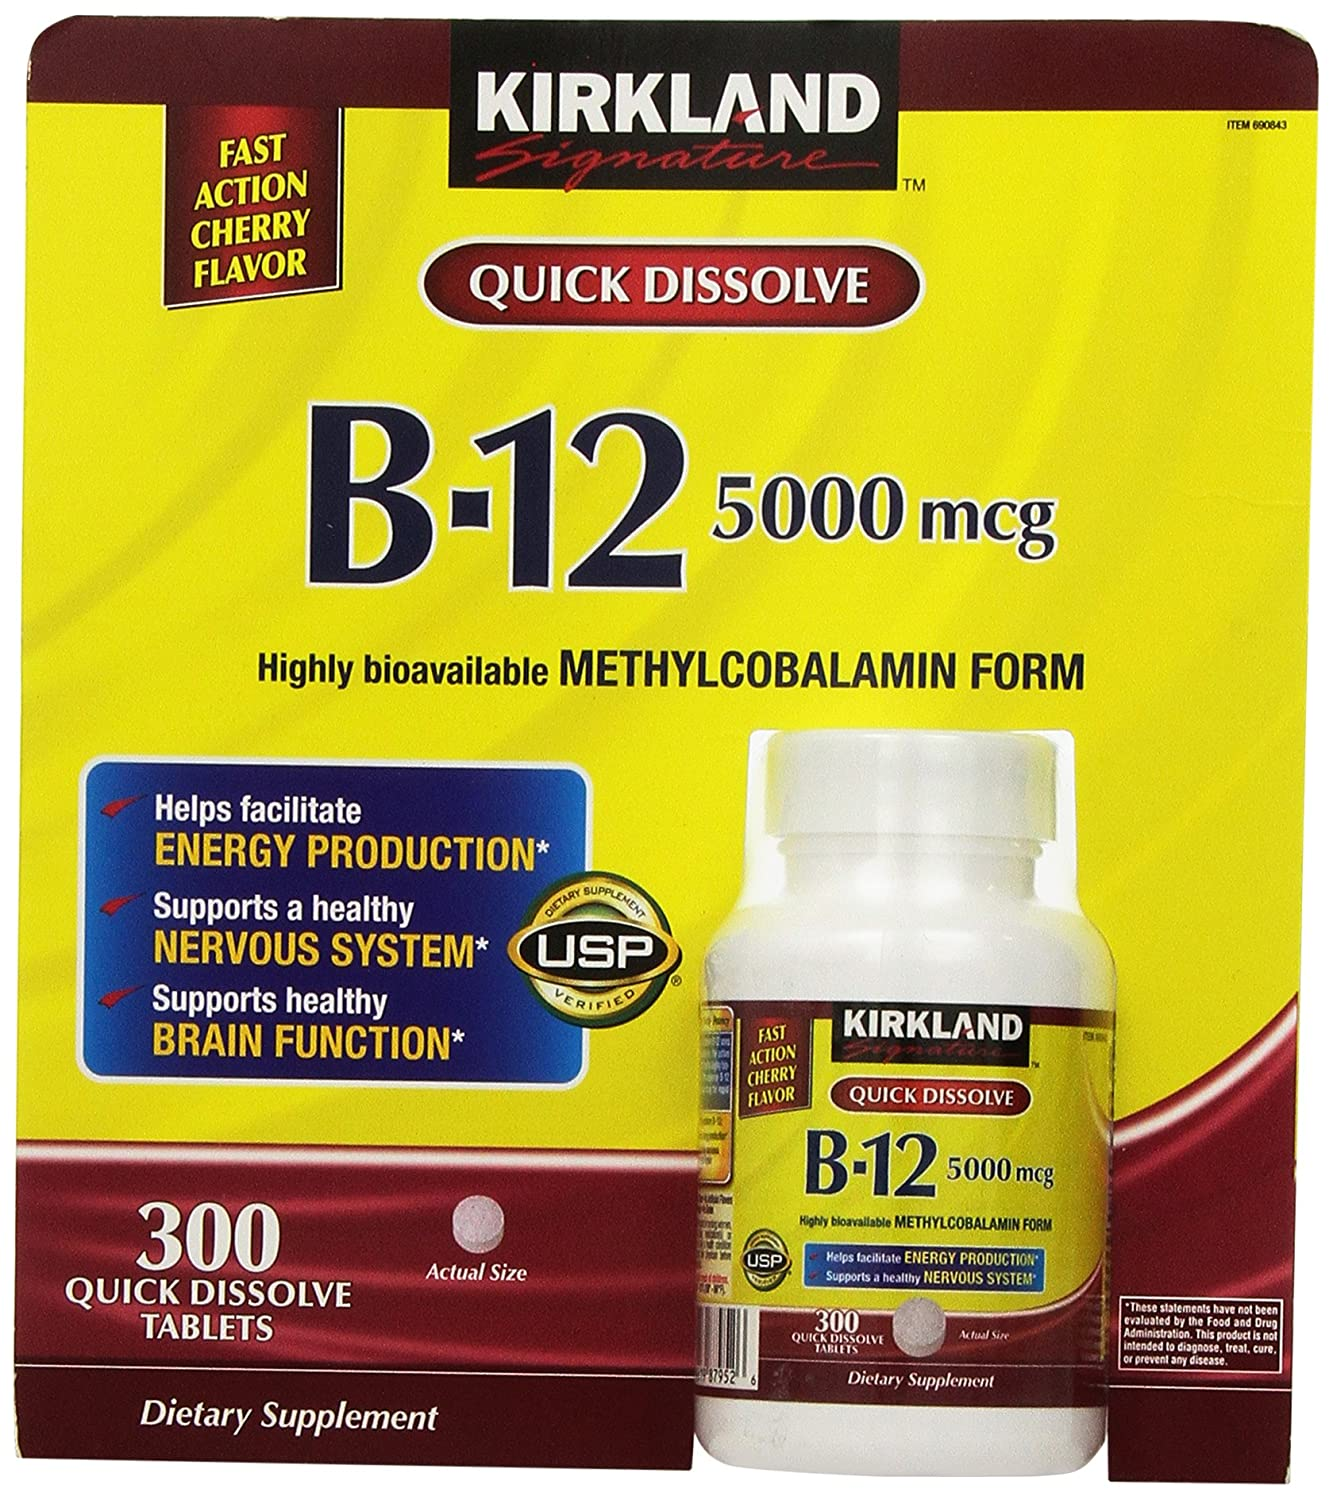 Kirkland Signature Sublingual B-12 5000 mcg